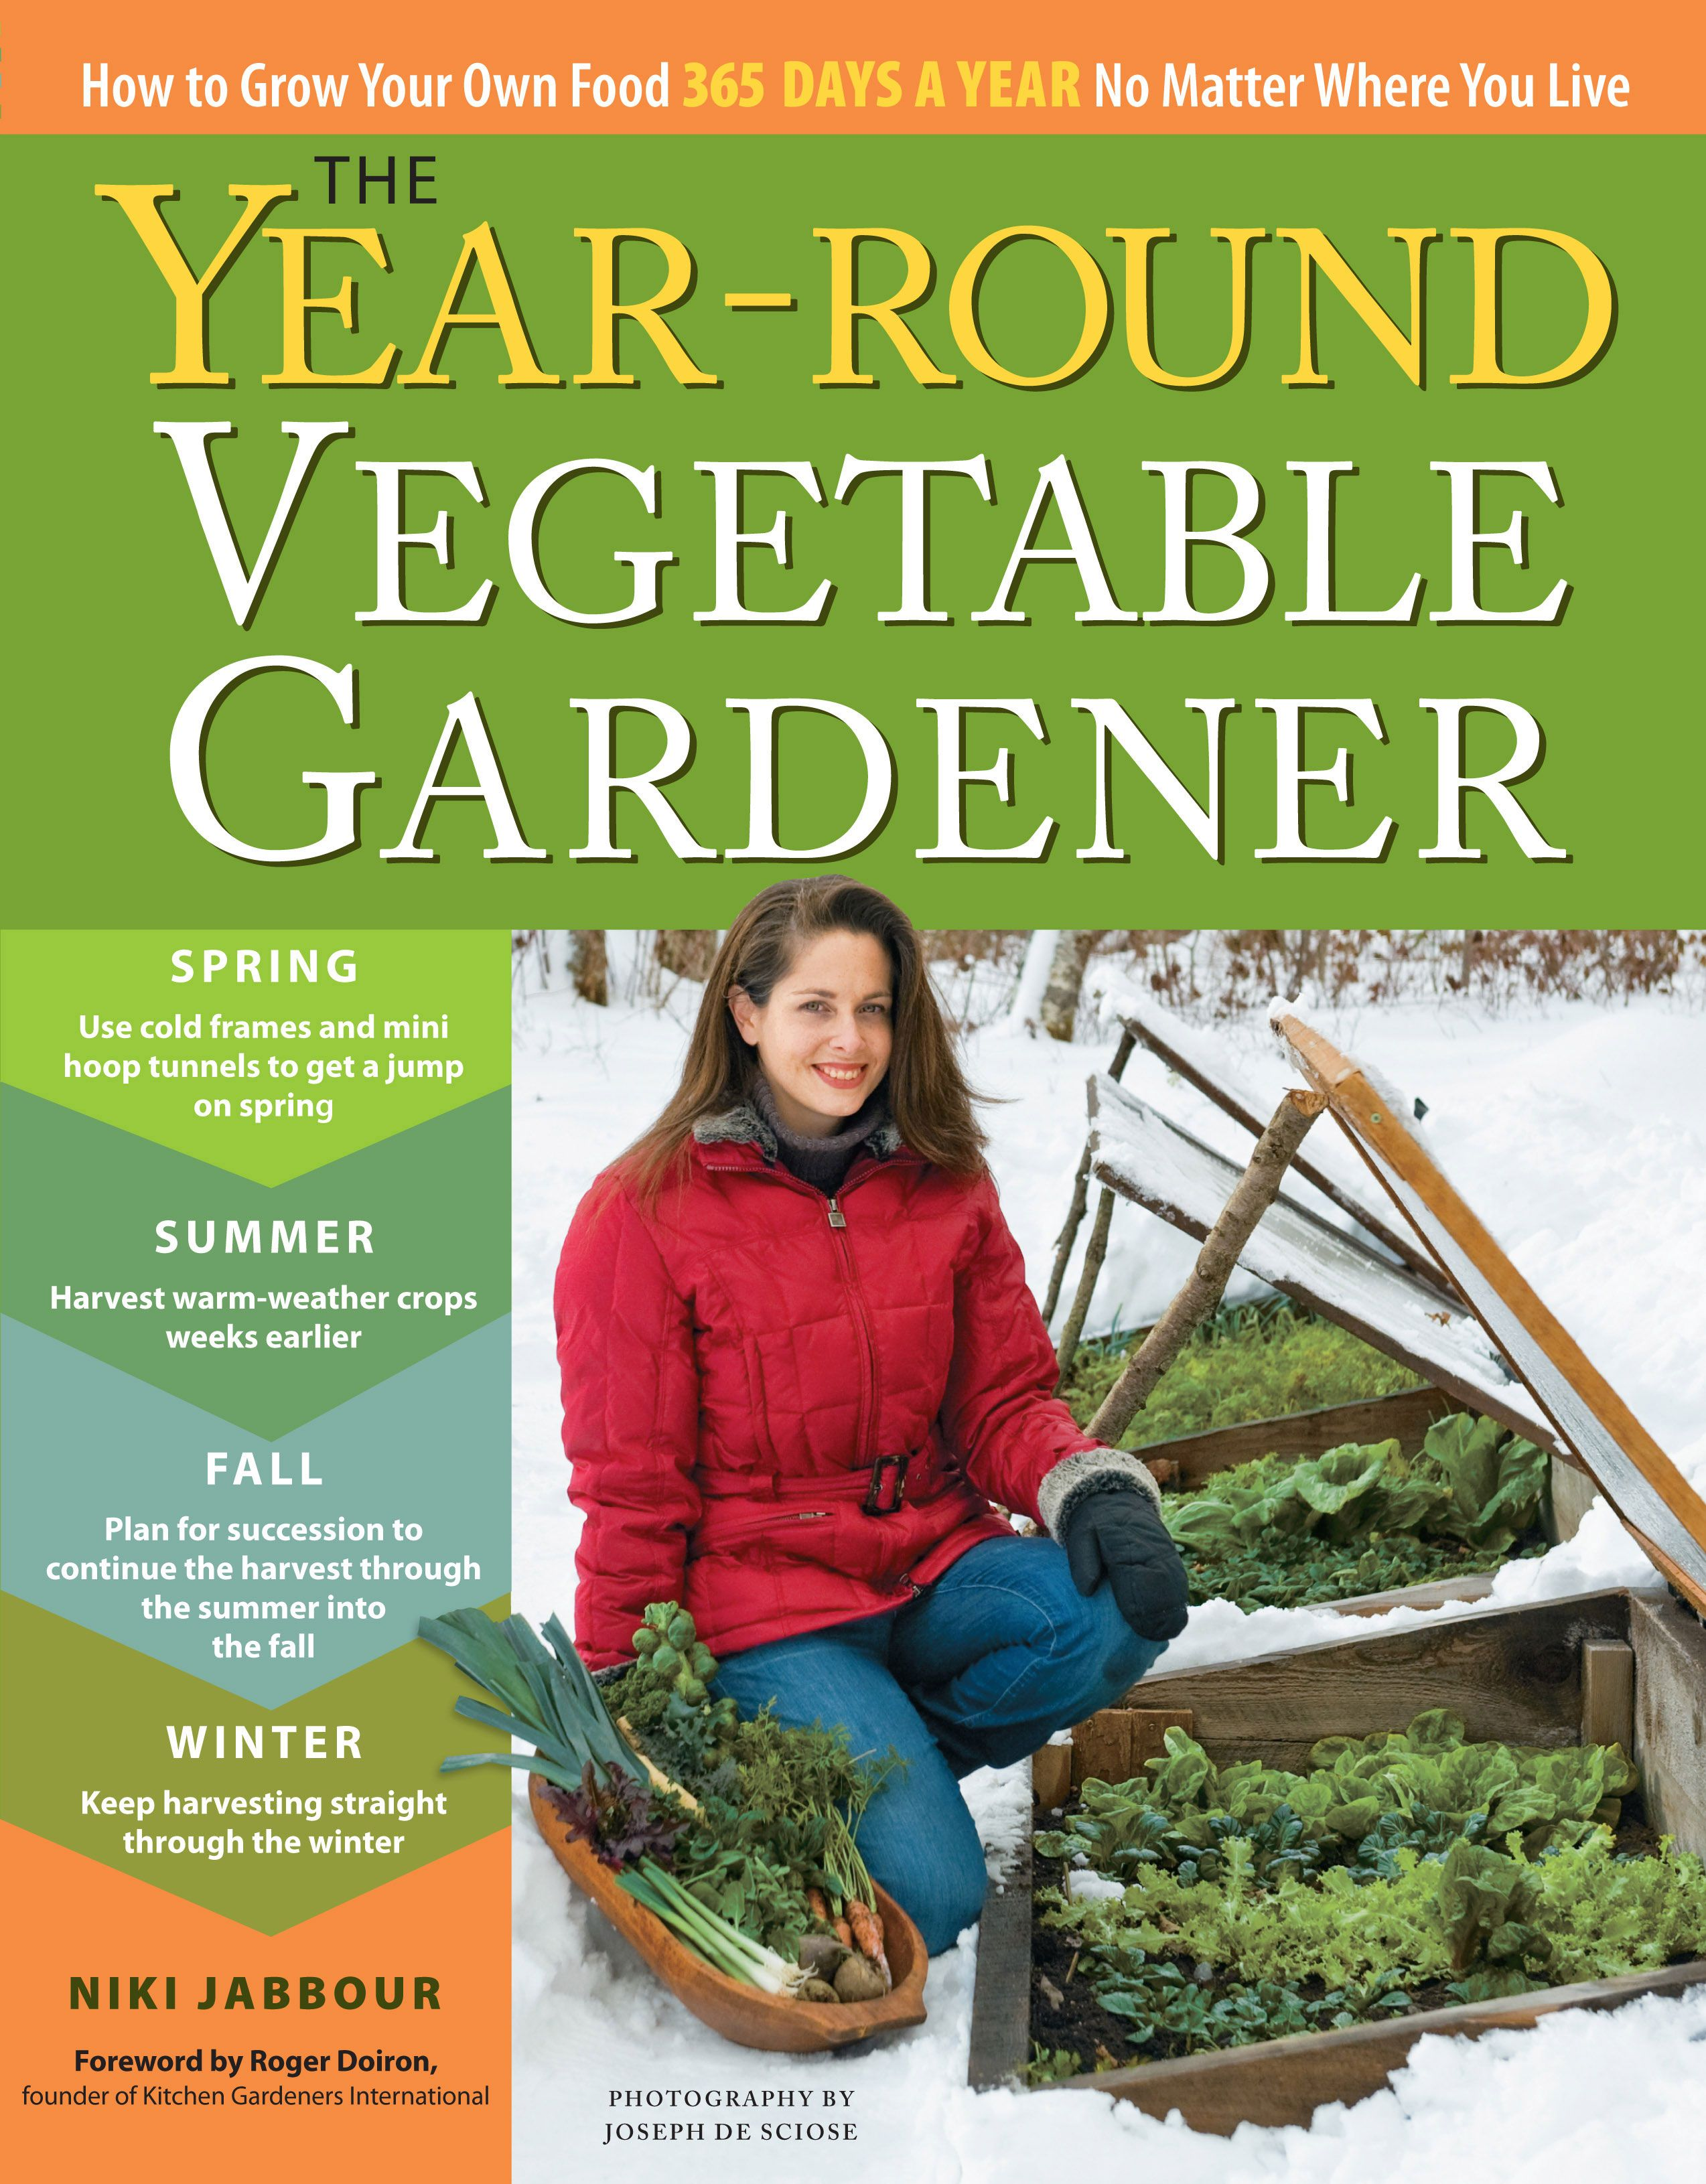 growing vegetables through the seasons with succession planting